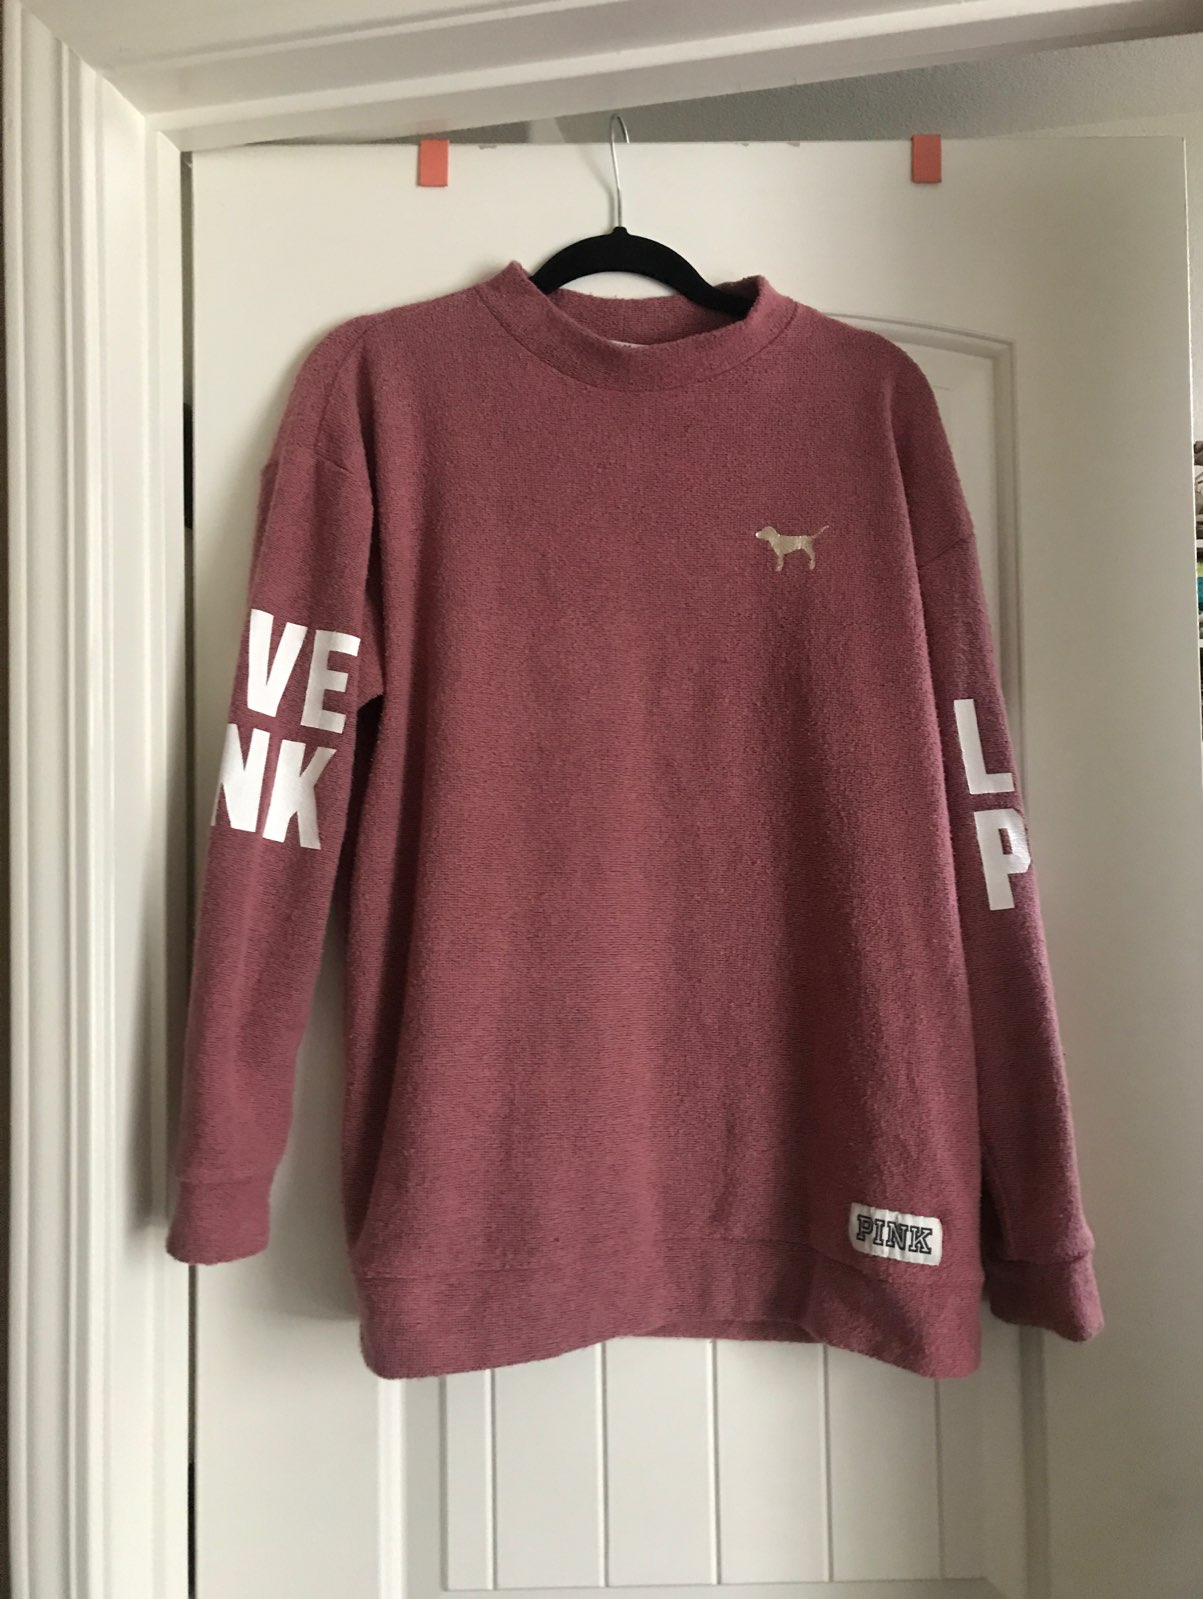 Victoria's Secret Pink Mockneck Sweater - Mercari: BUY & SELL ...